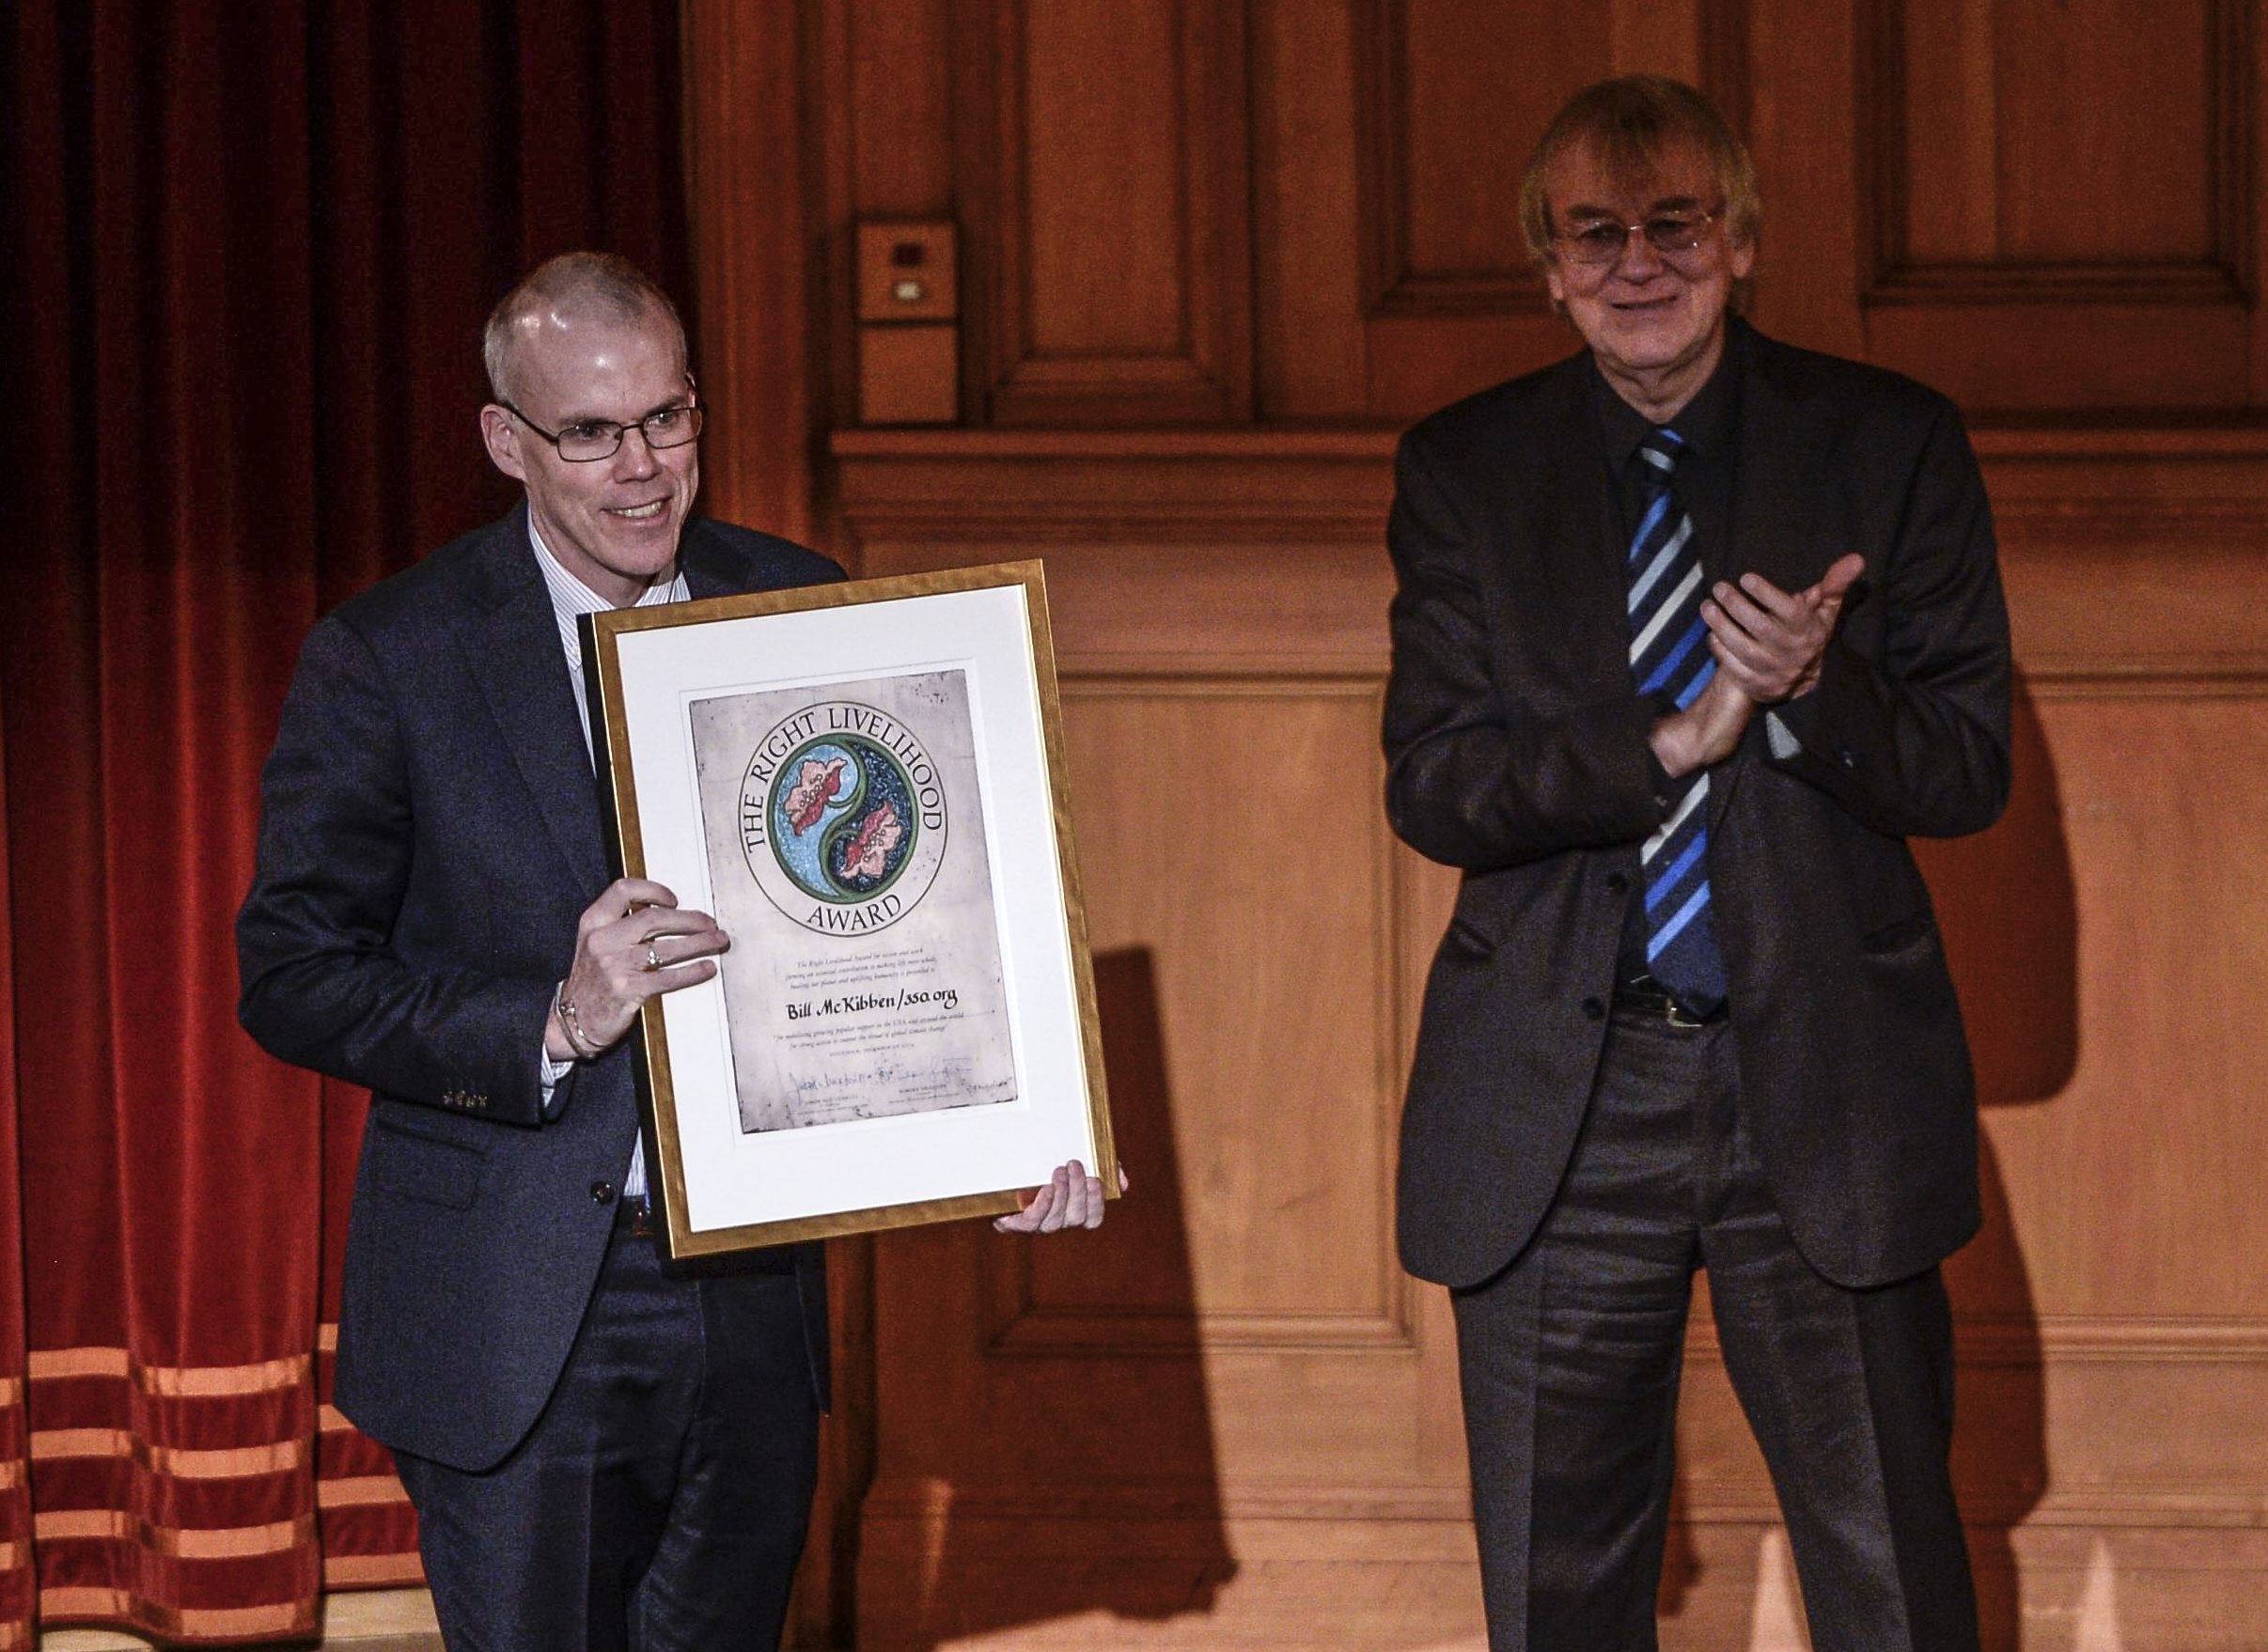 McKibben representing the organization 350.org of the U.S. receives the Right Livelihood Award from von Uexkull during the Right Livelihood Award ceremony in Stockholm